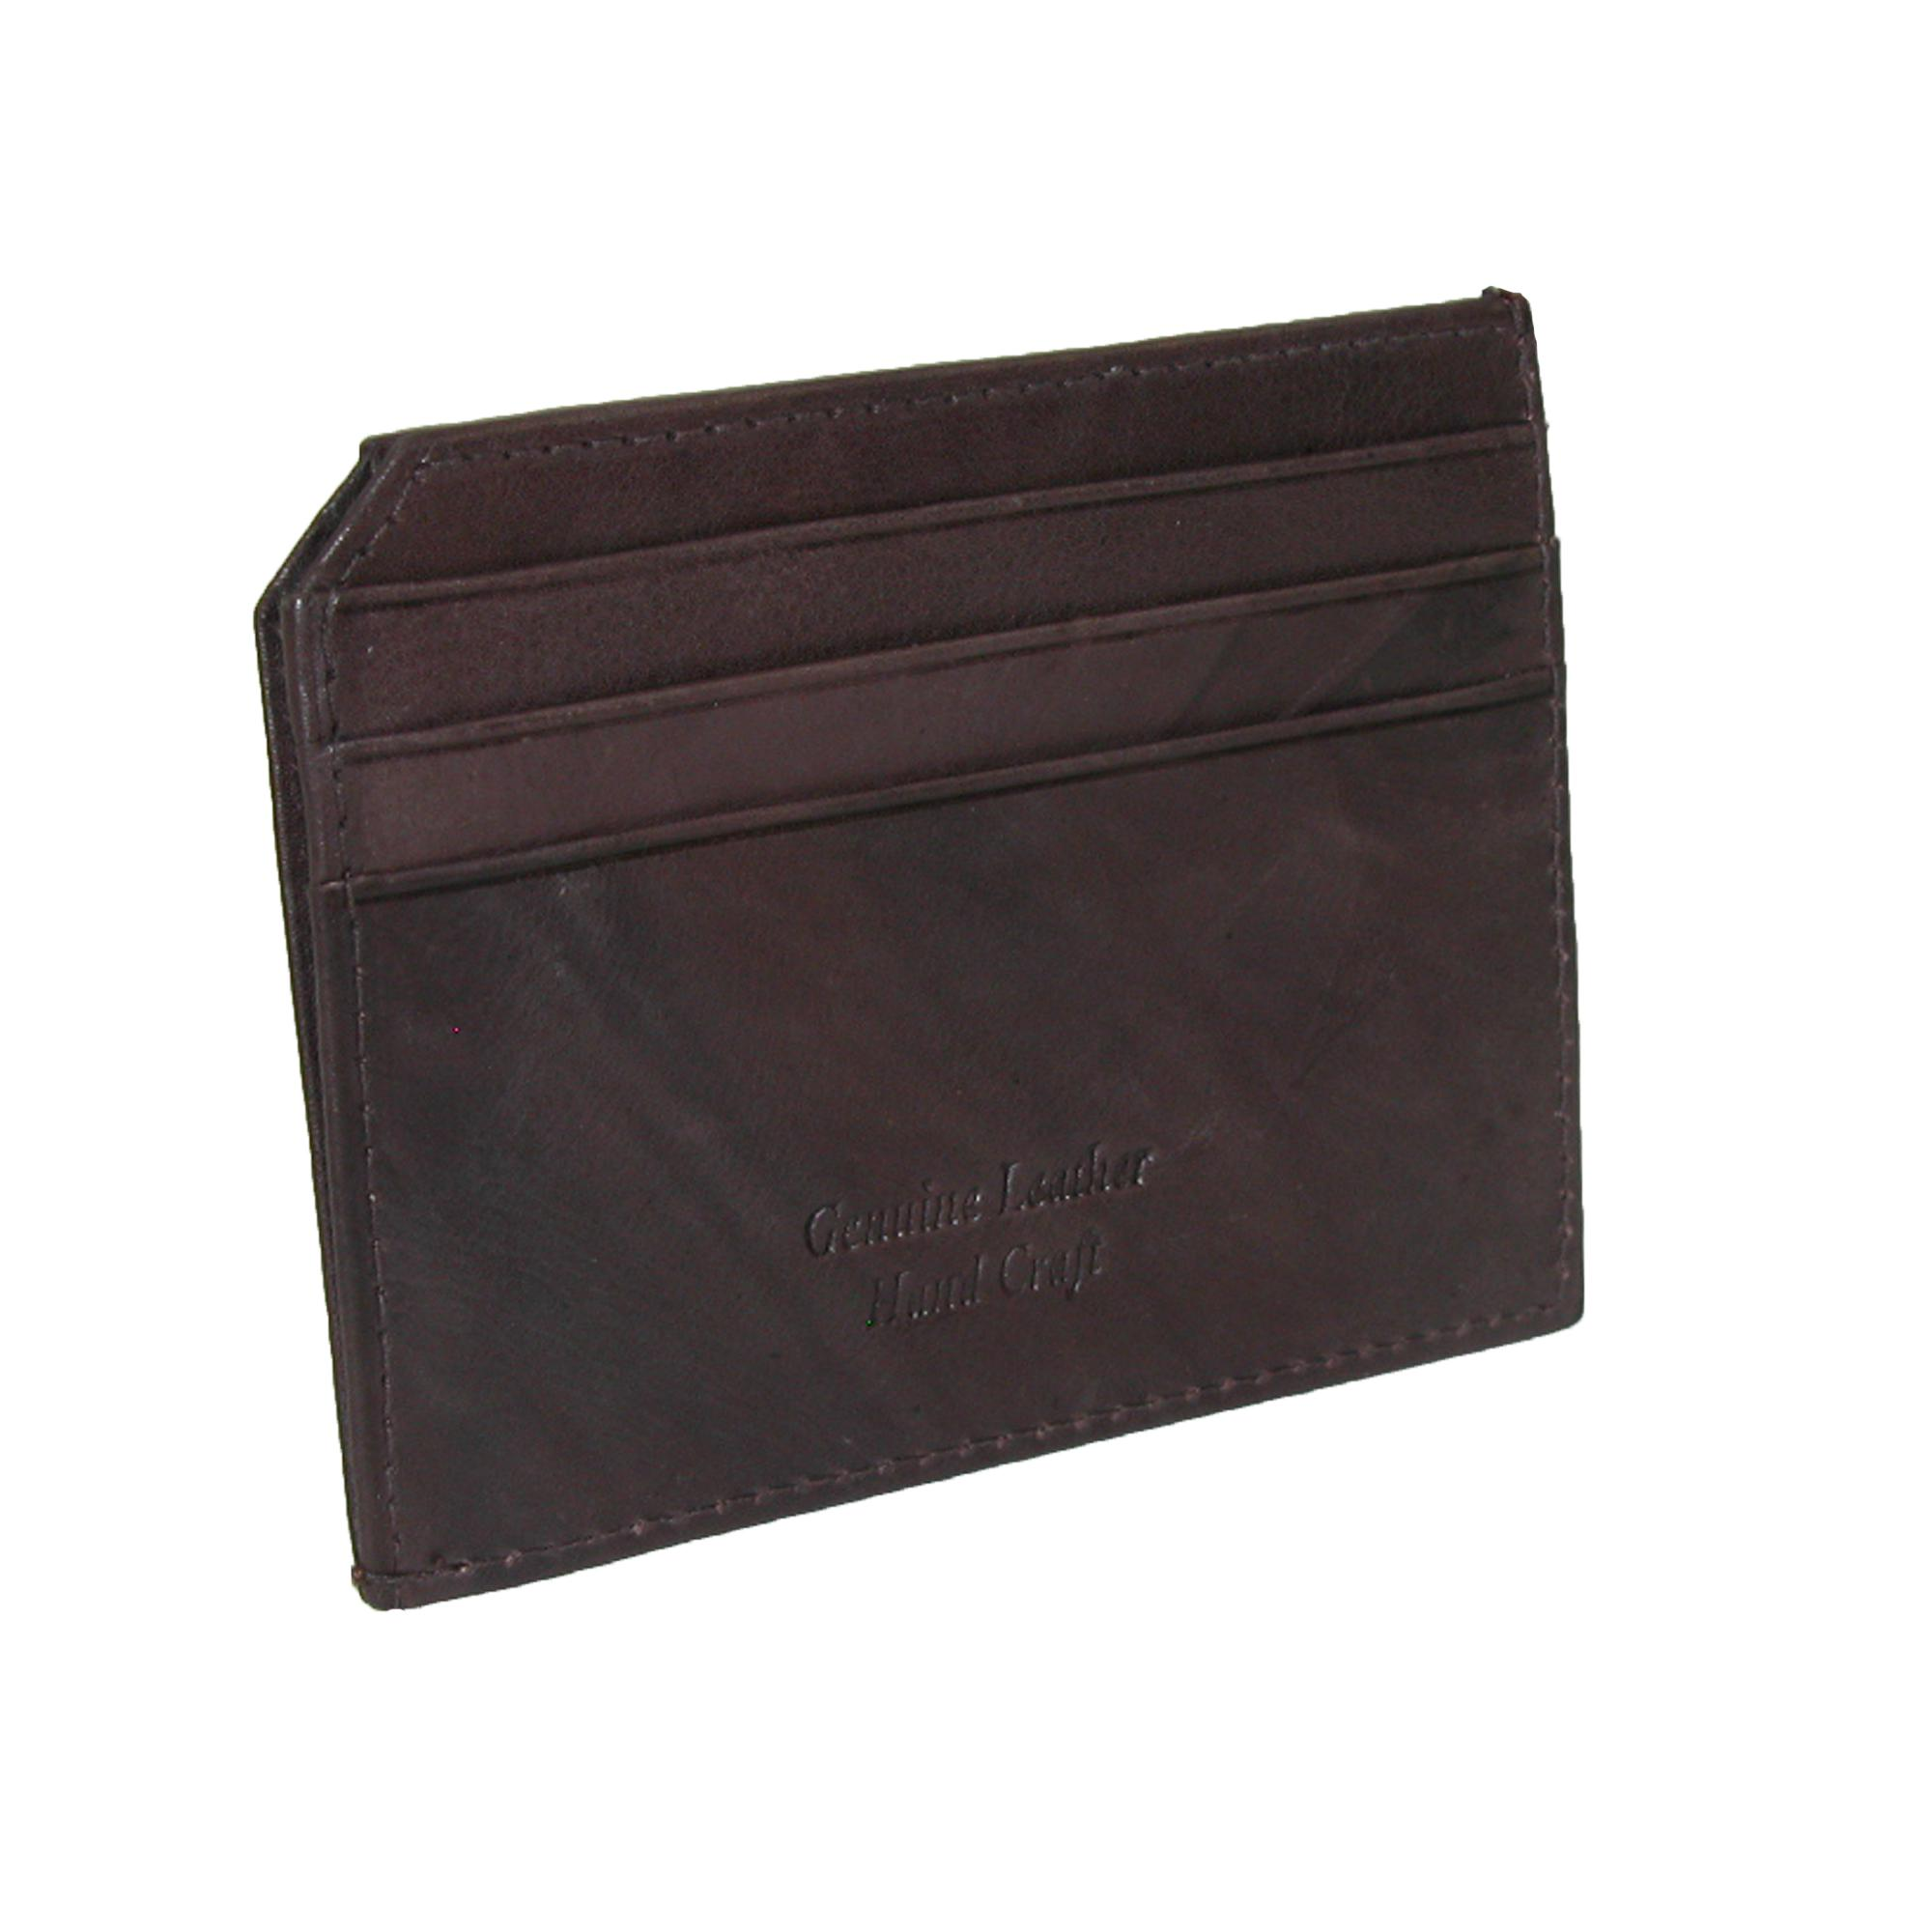 Paul_&_Taylor_Mens_Leather_Slim_ID_Credit_Card_Wallet_